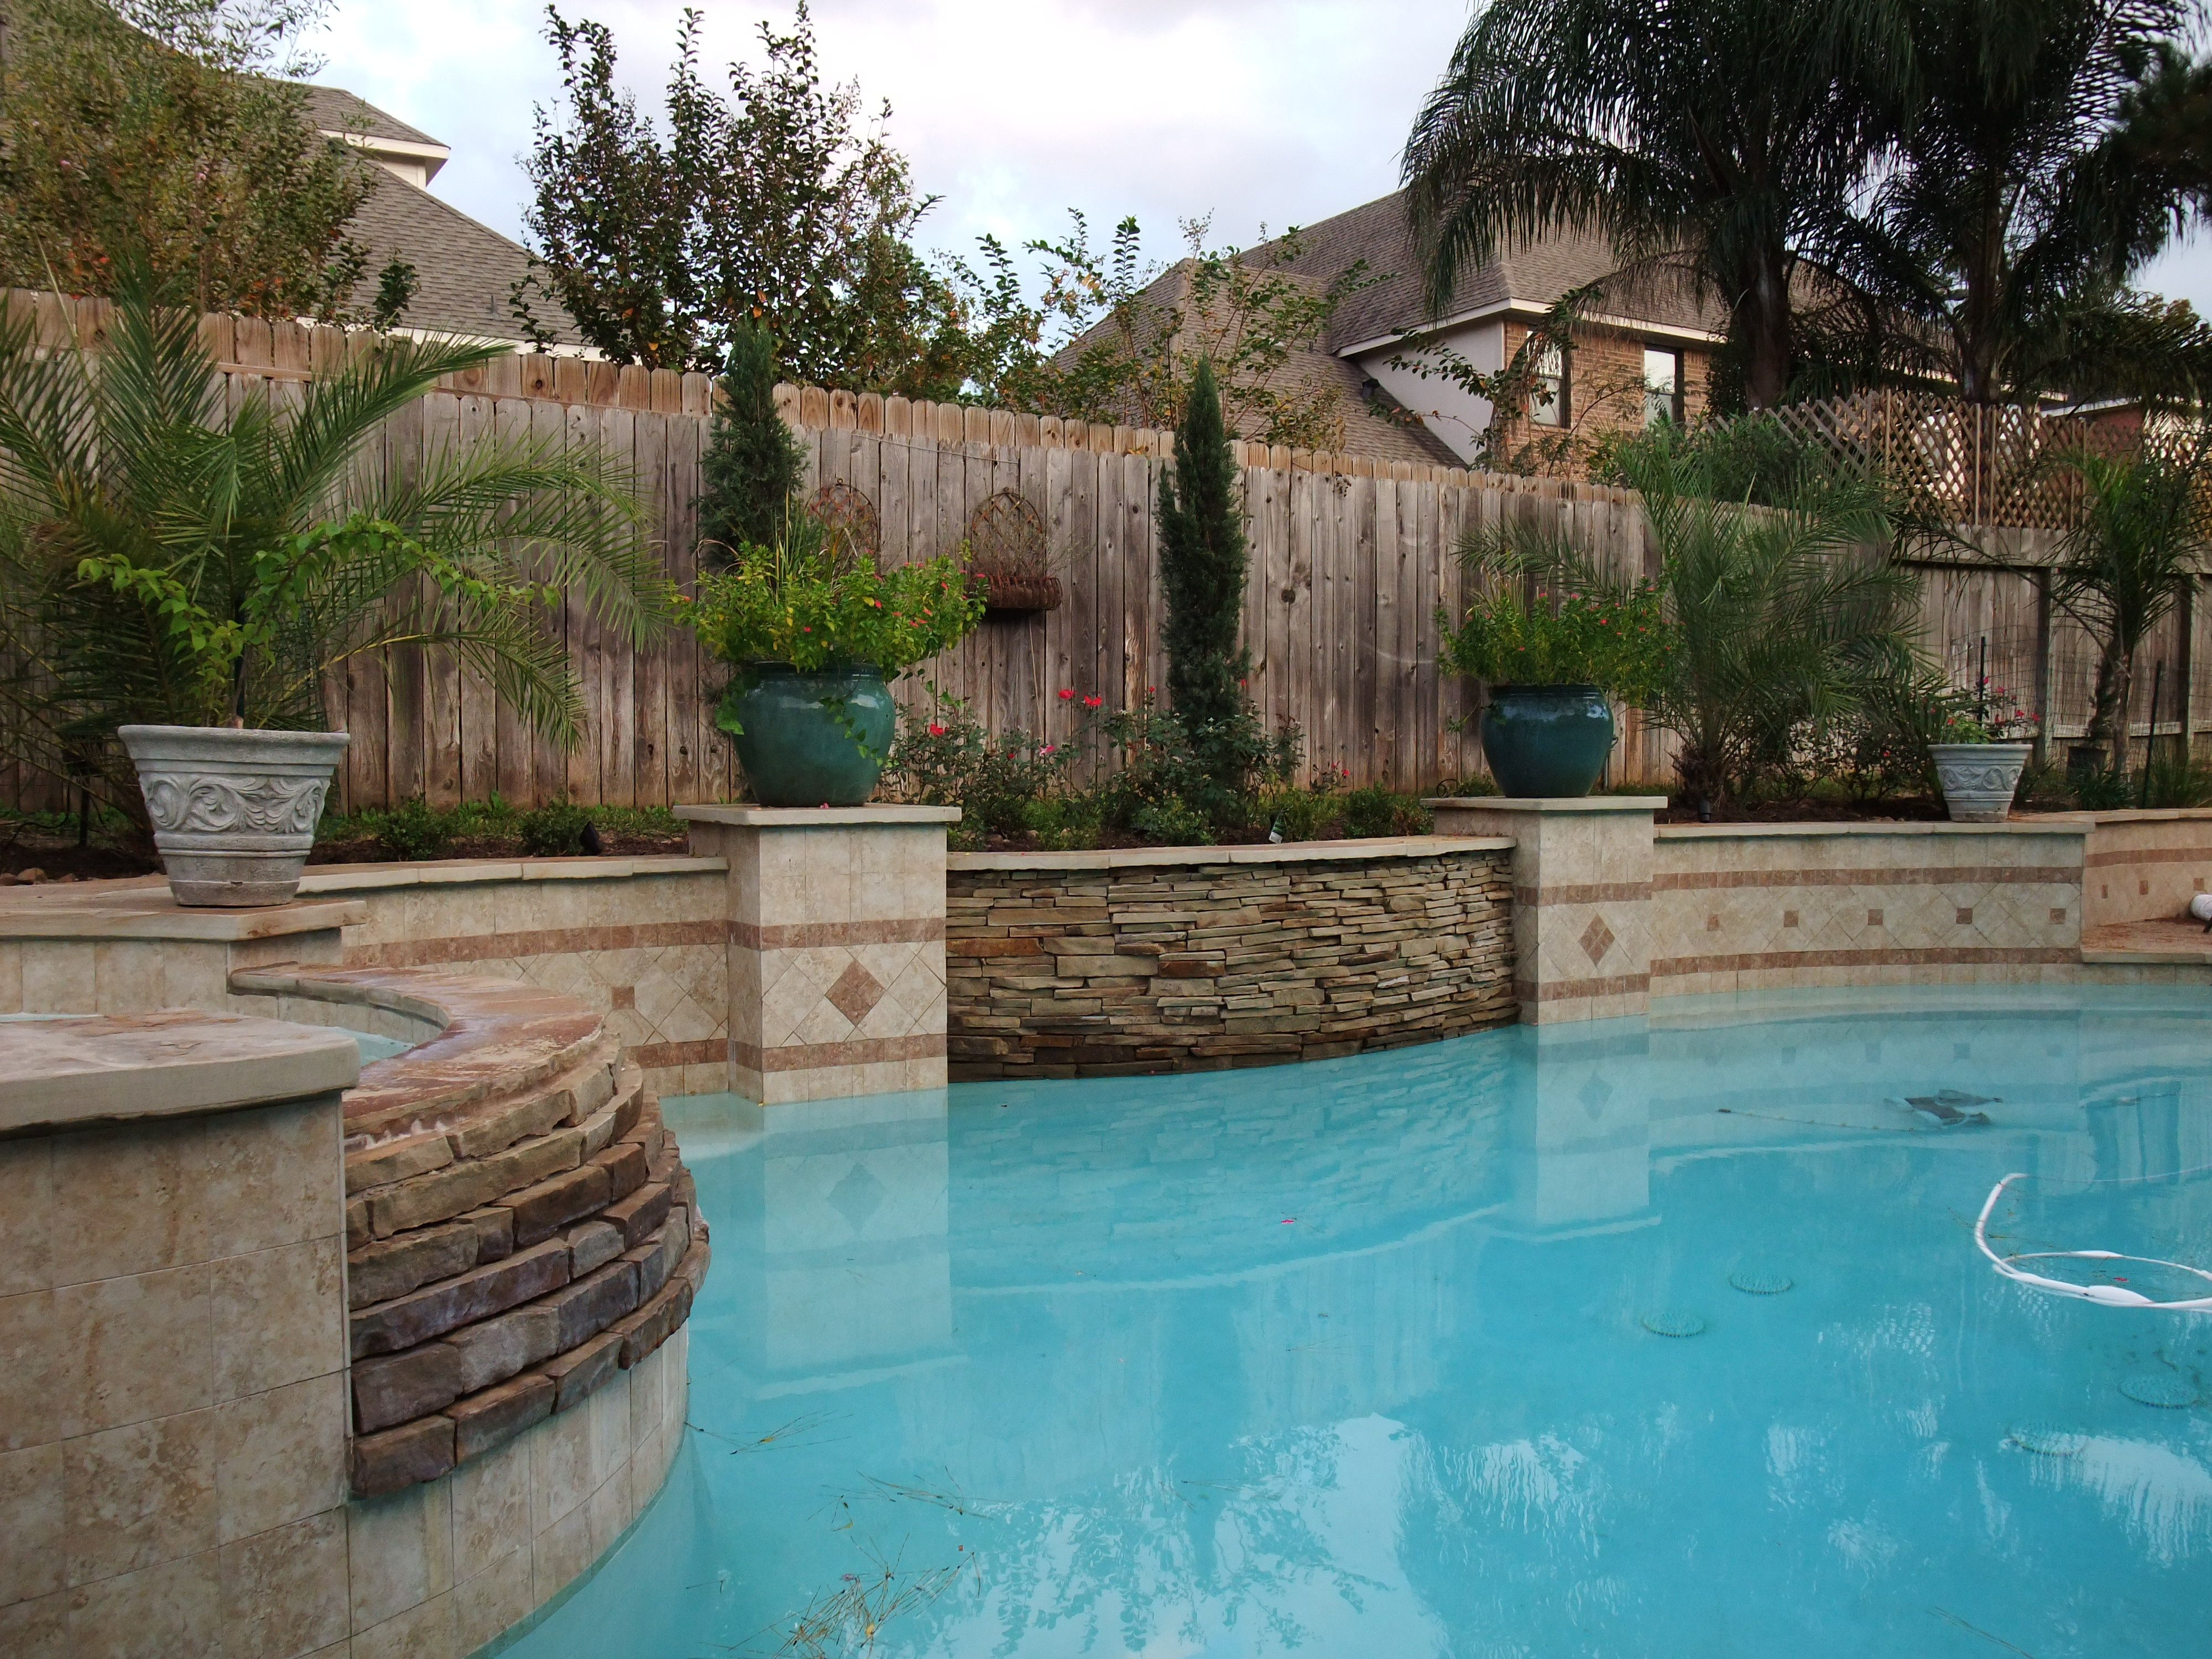 Stacked stone water feature - Stacked Stone Weeping Wall Water Feature In The Middele And Waterfall Off Hot Tub